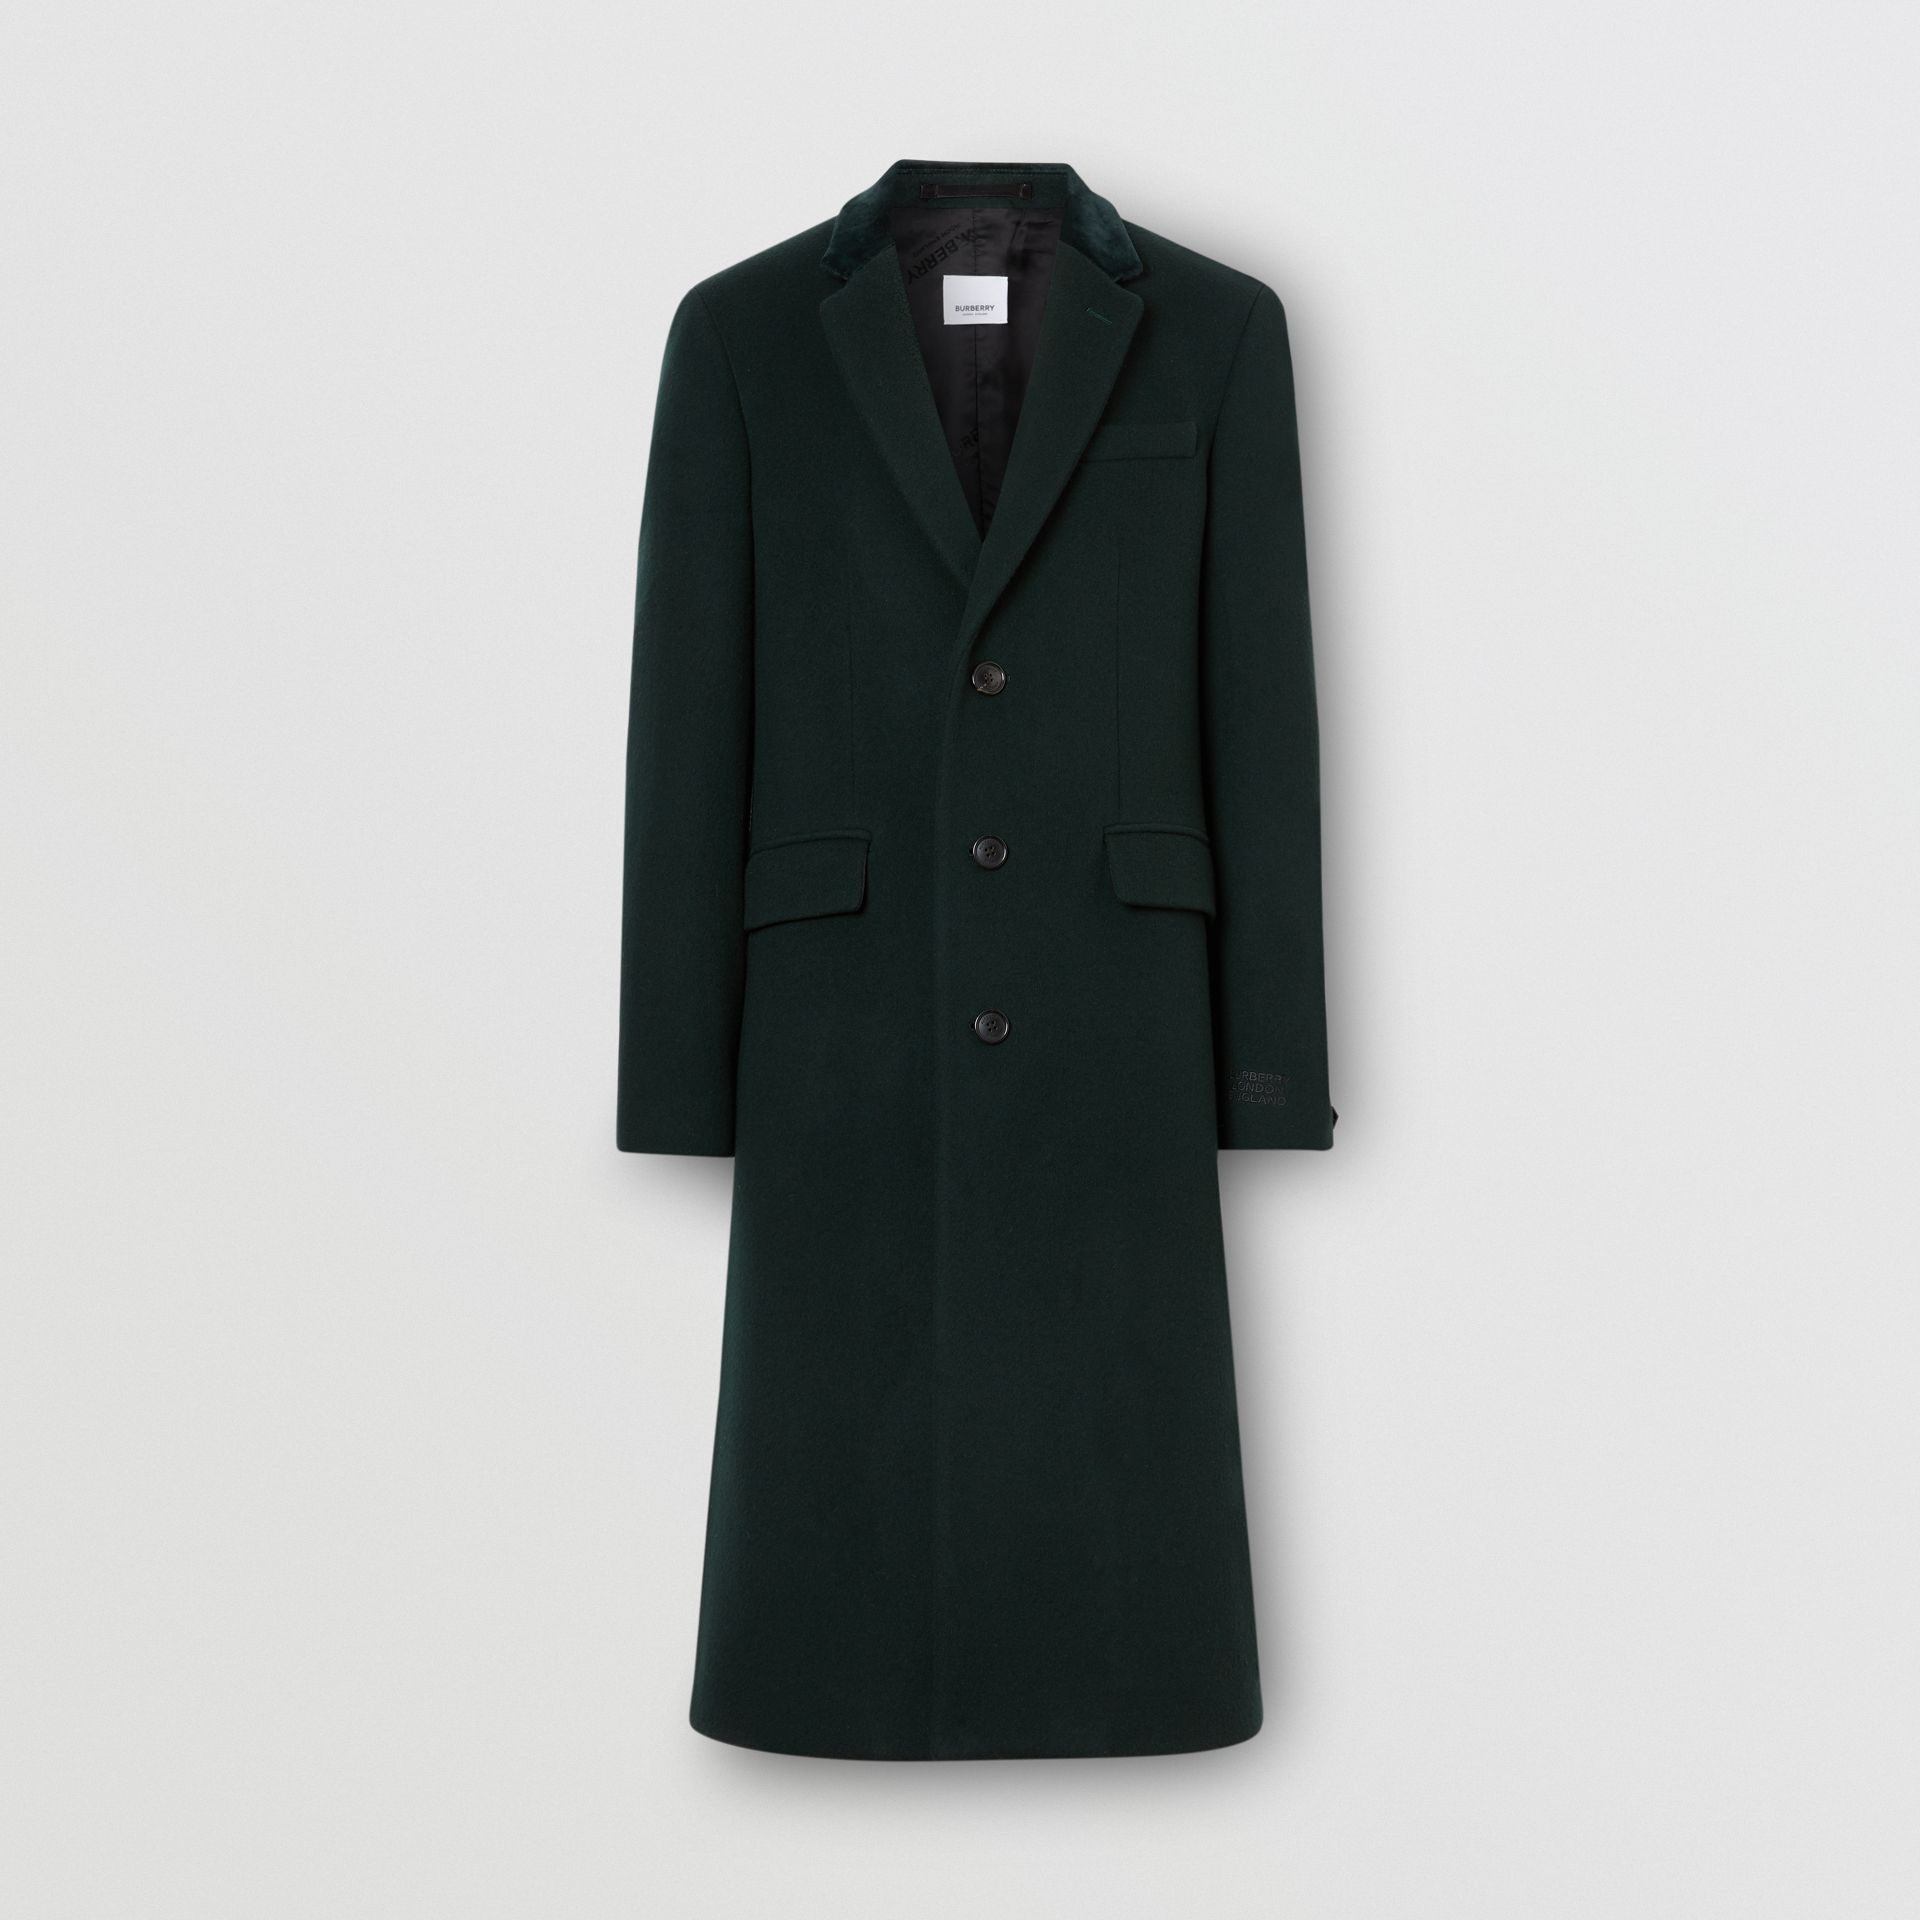 Velvet Trim Wool Cashmere Tailored Coat in Dark Pine Green - Men | Burberry - gallery image 3